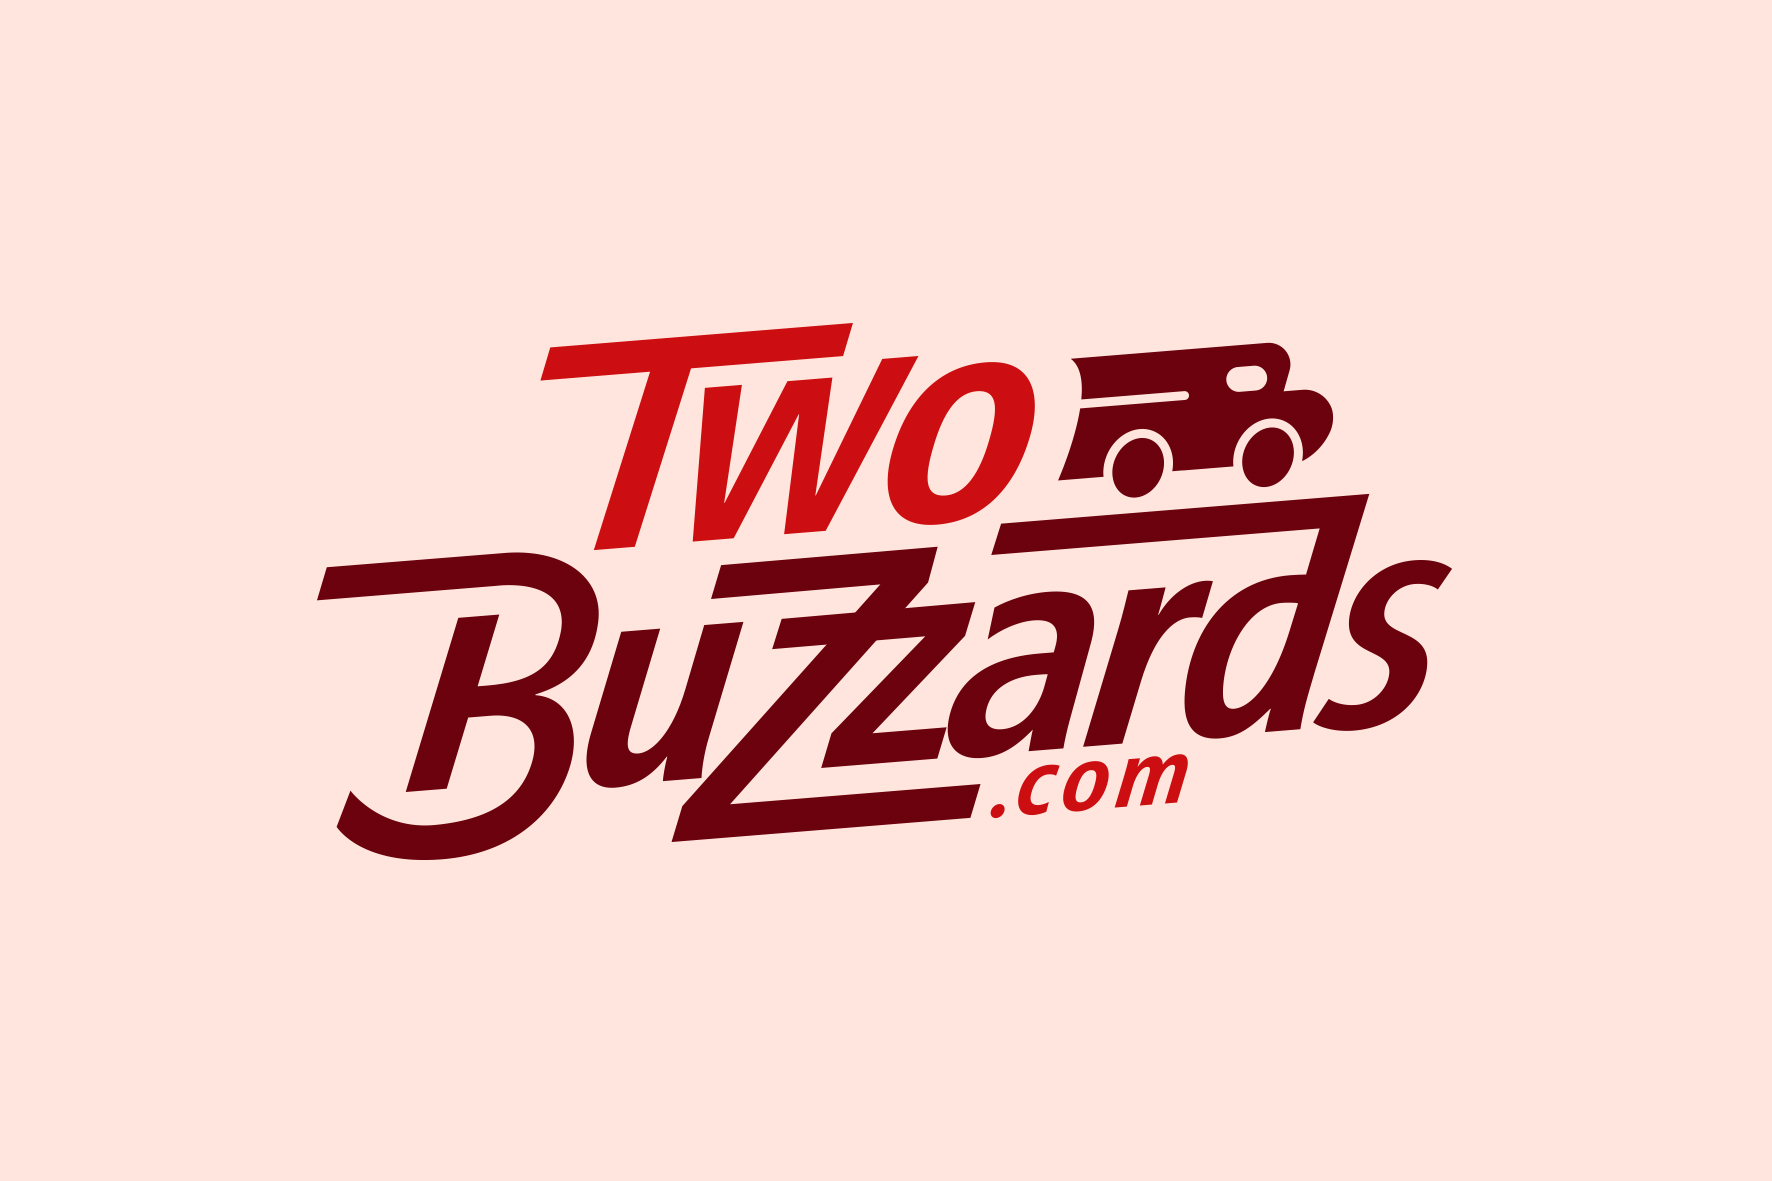 Logo Design for Two Buzzards Removals